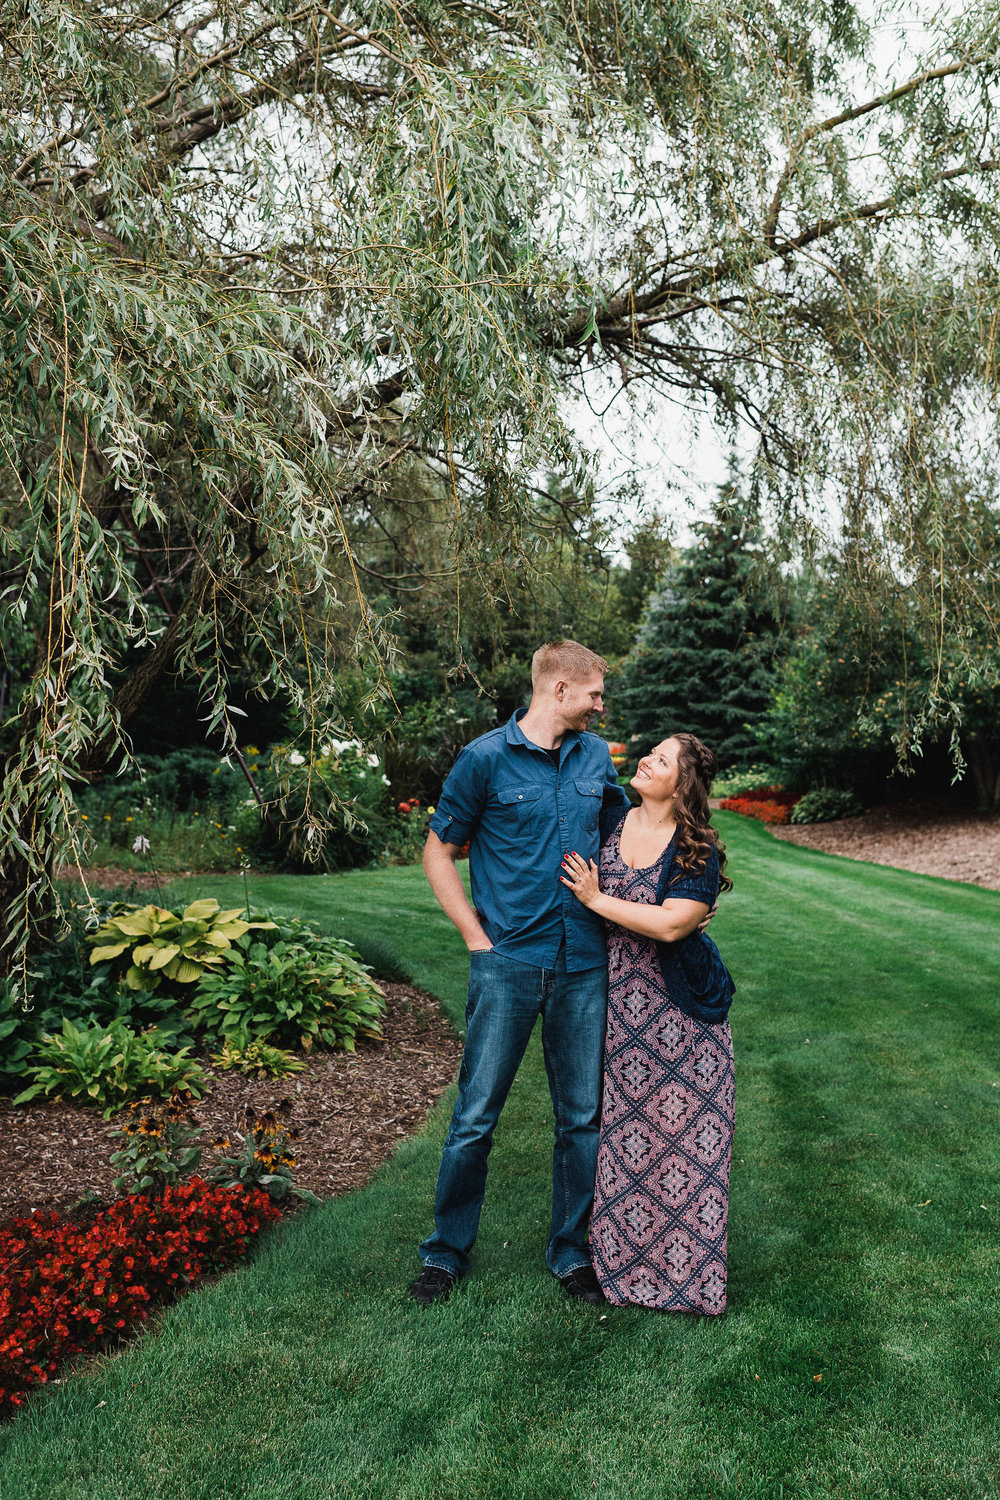 Engaged couple with arms around each other smiles at each other while standing in a garden.